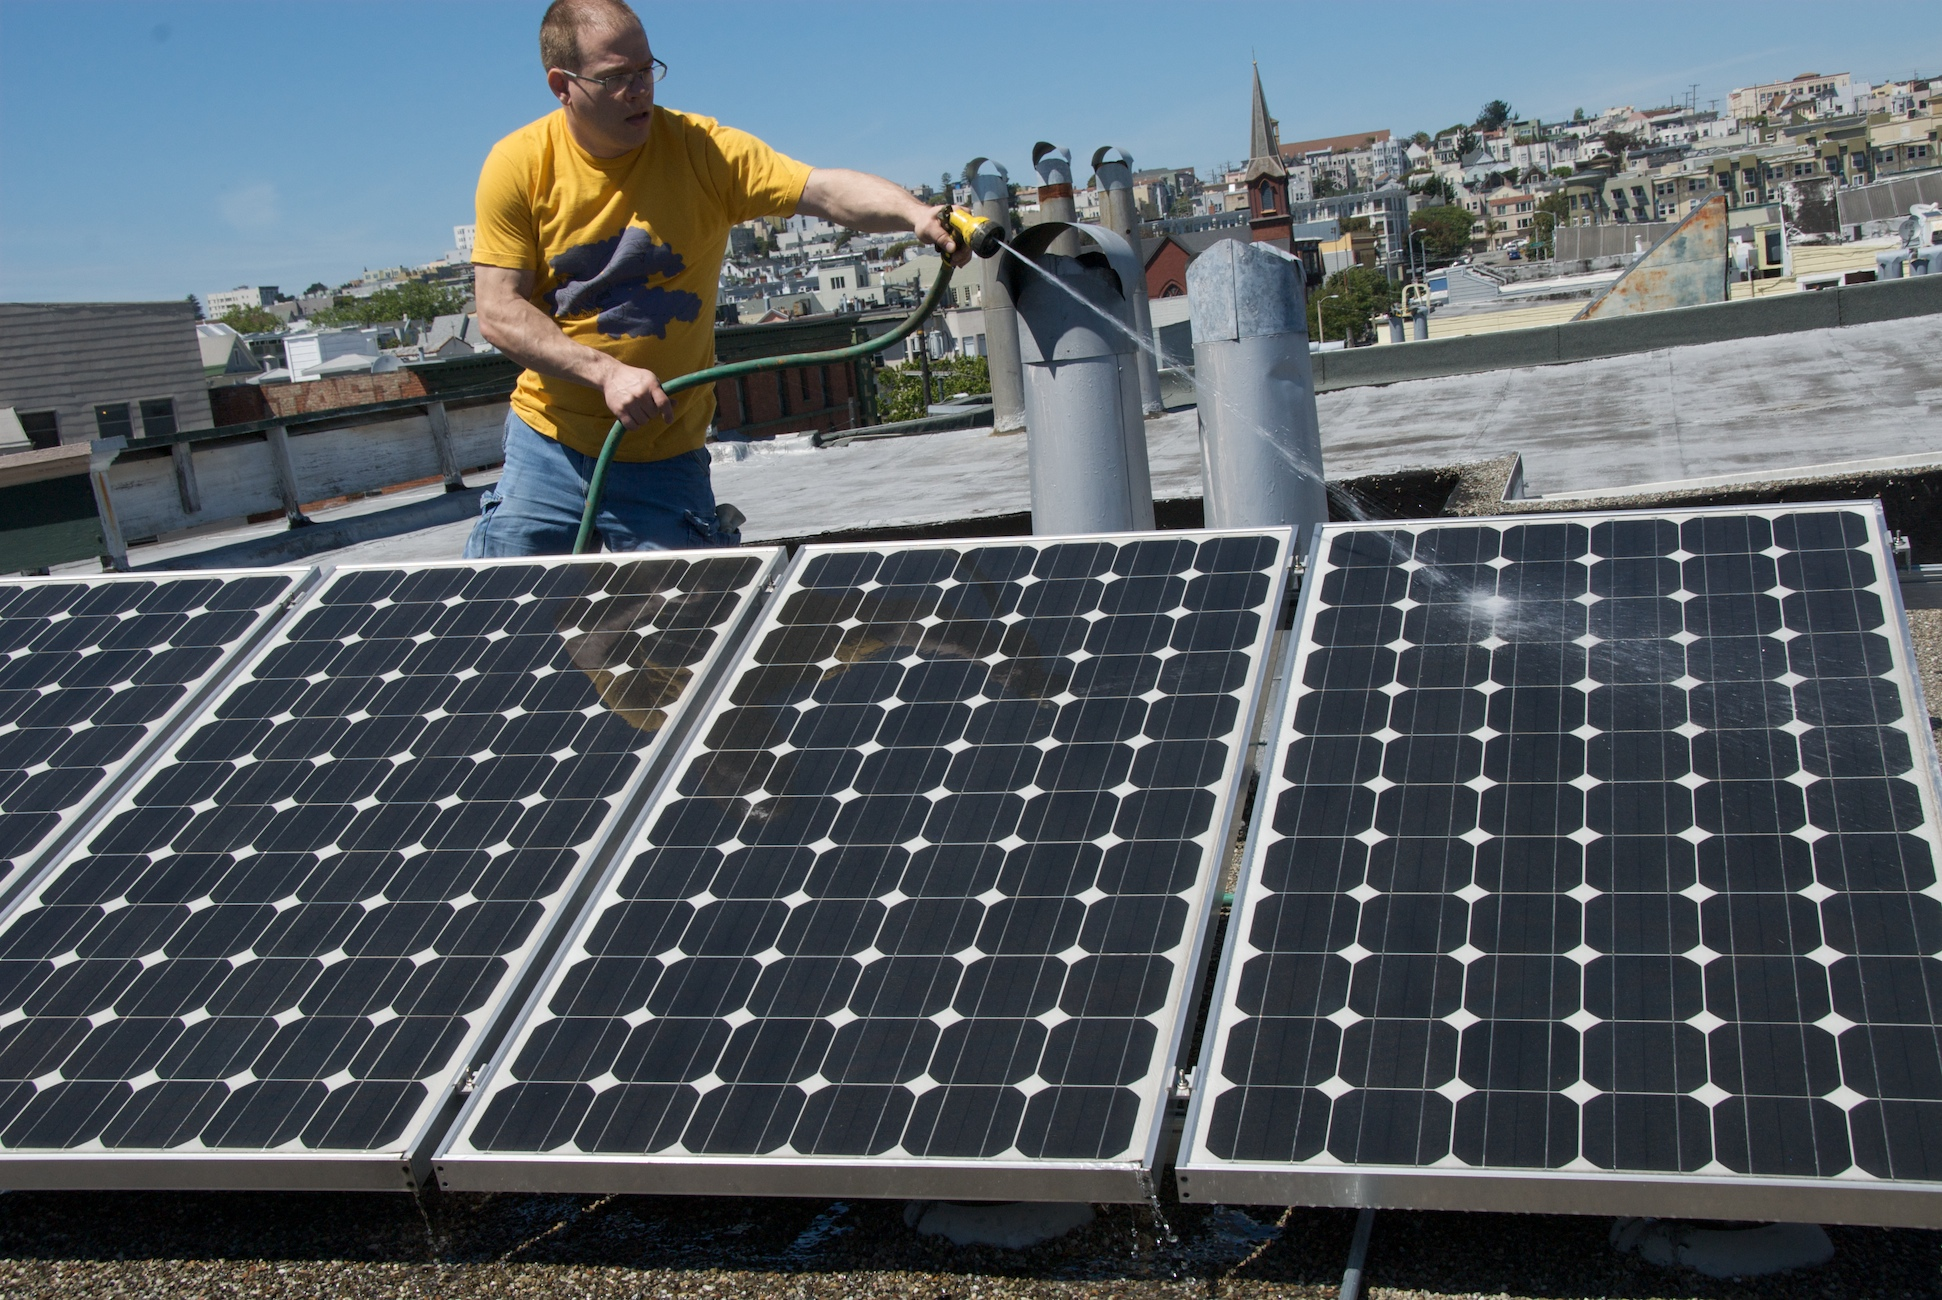 California S Rooftop Solar Requirement Brings New Meaning To The Summer Solstice Environment California